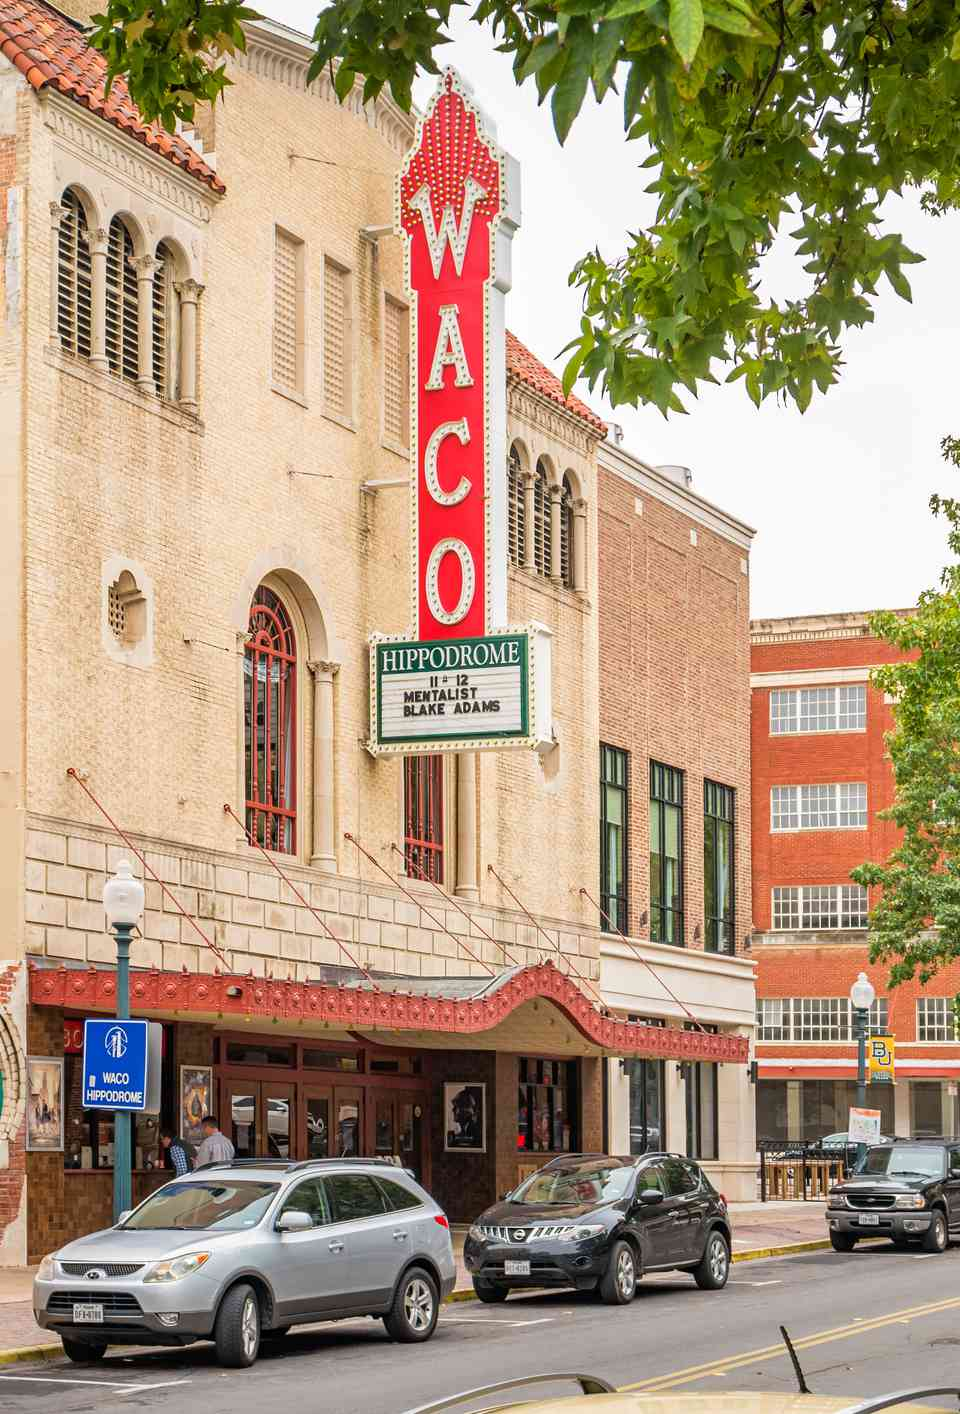 Hippodrome Theater in downtown Waco Texas USA